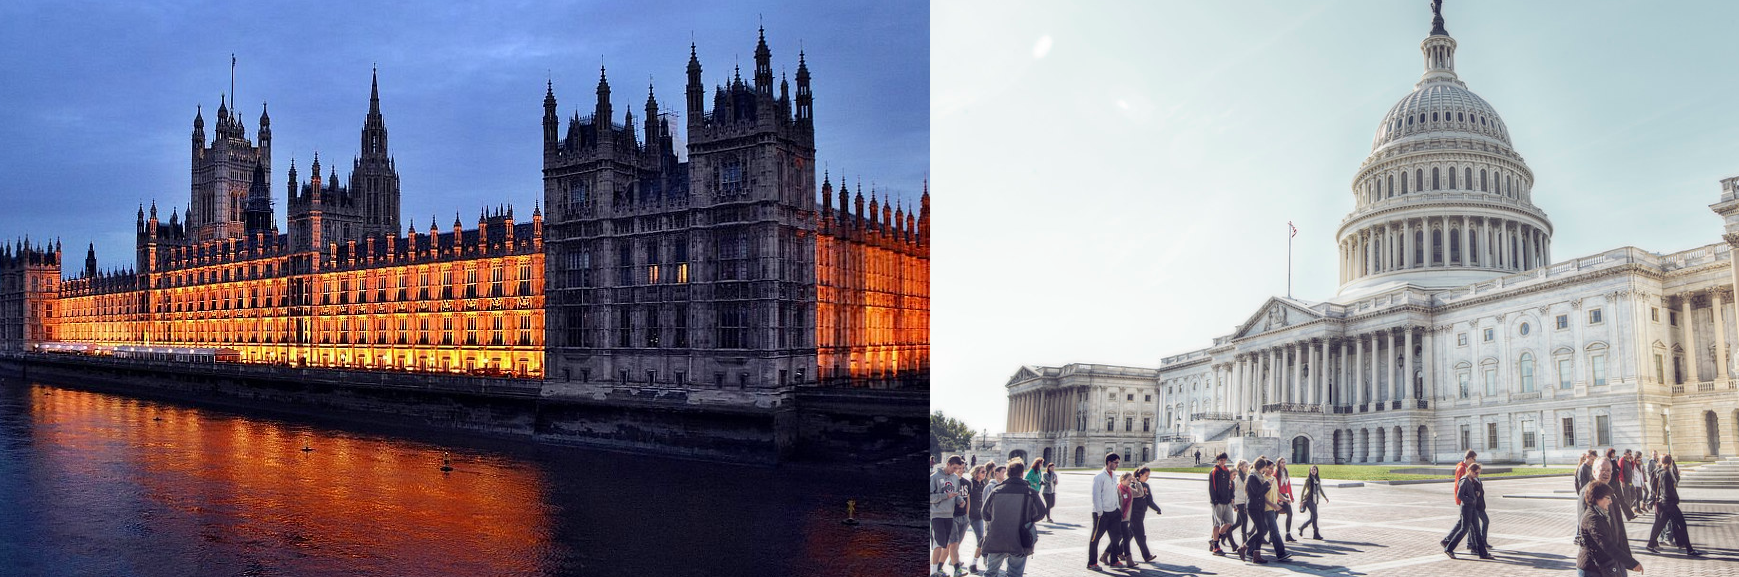 Brits do it Better: Four Reasons Why the UK's Parliament is better than Congress